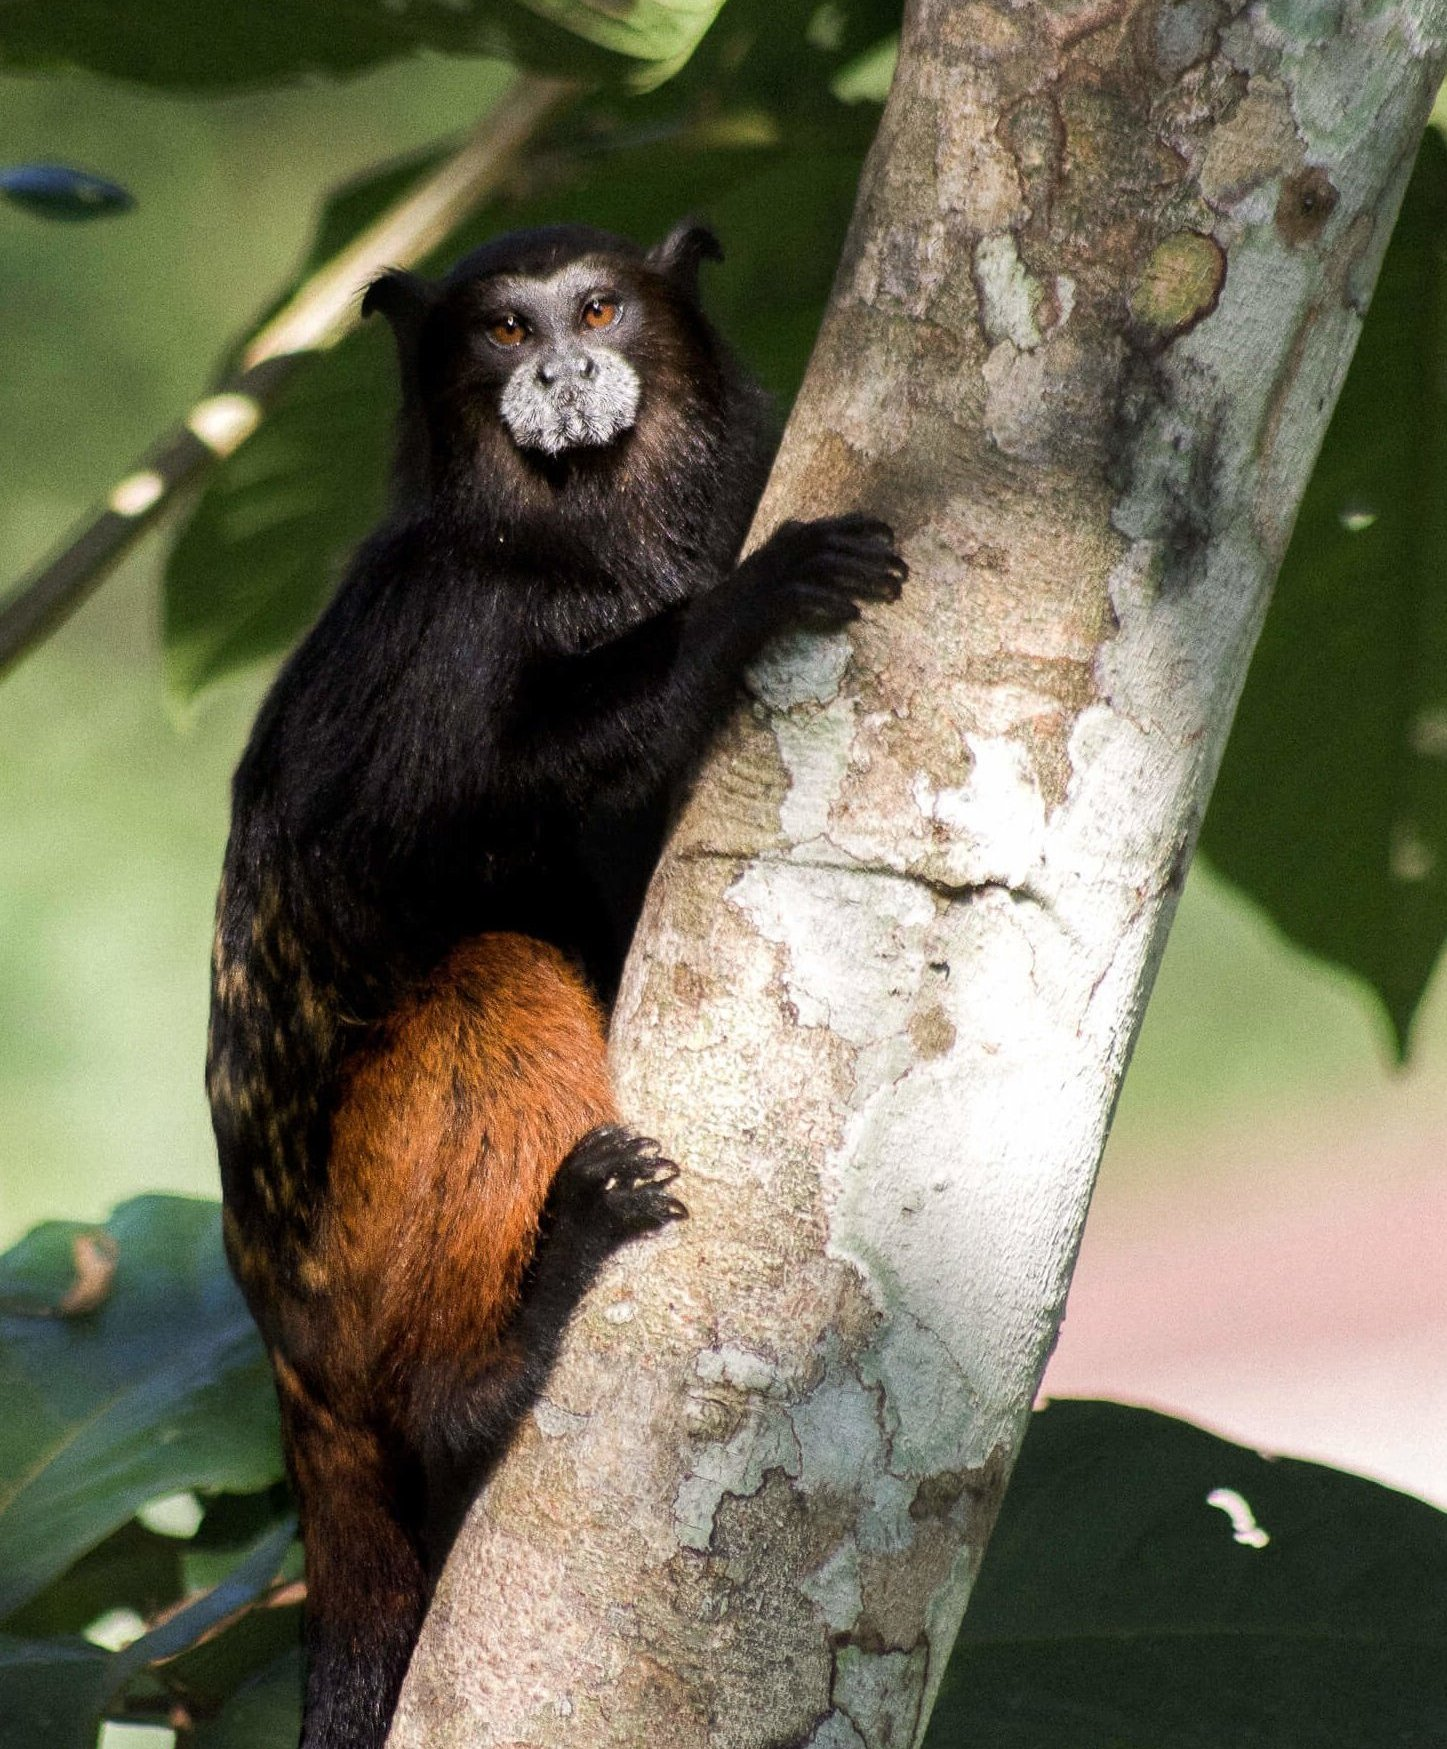 A small black and brown Tamarin monkey hanging onto a branch looking straight into the camera